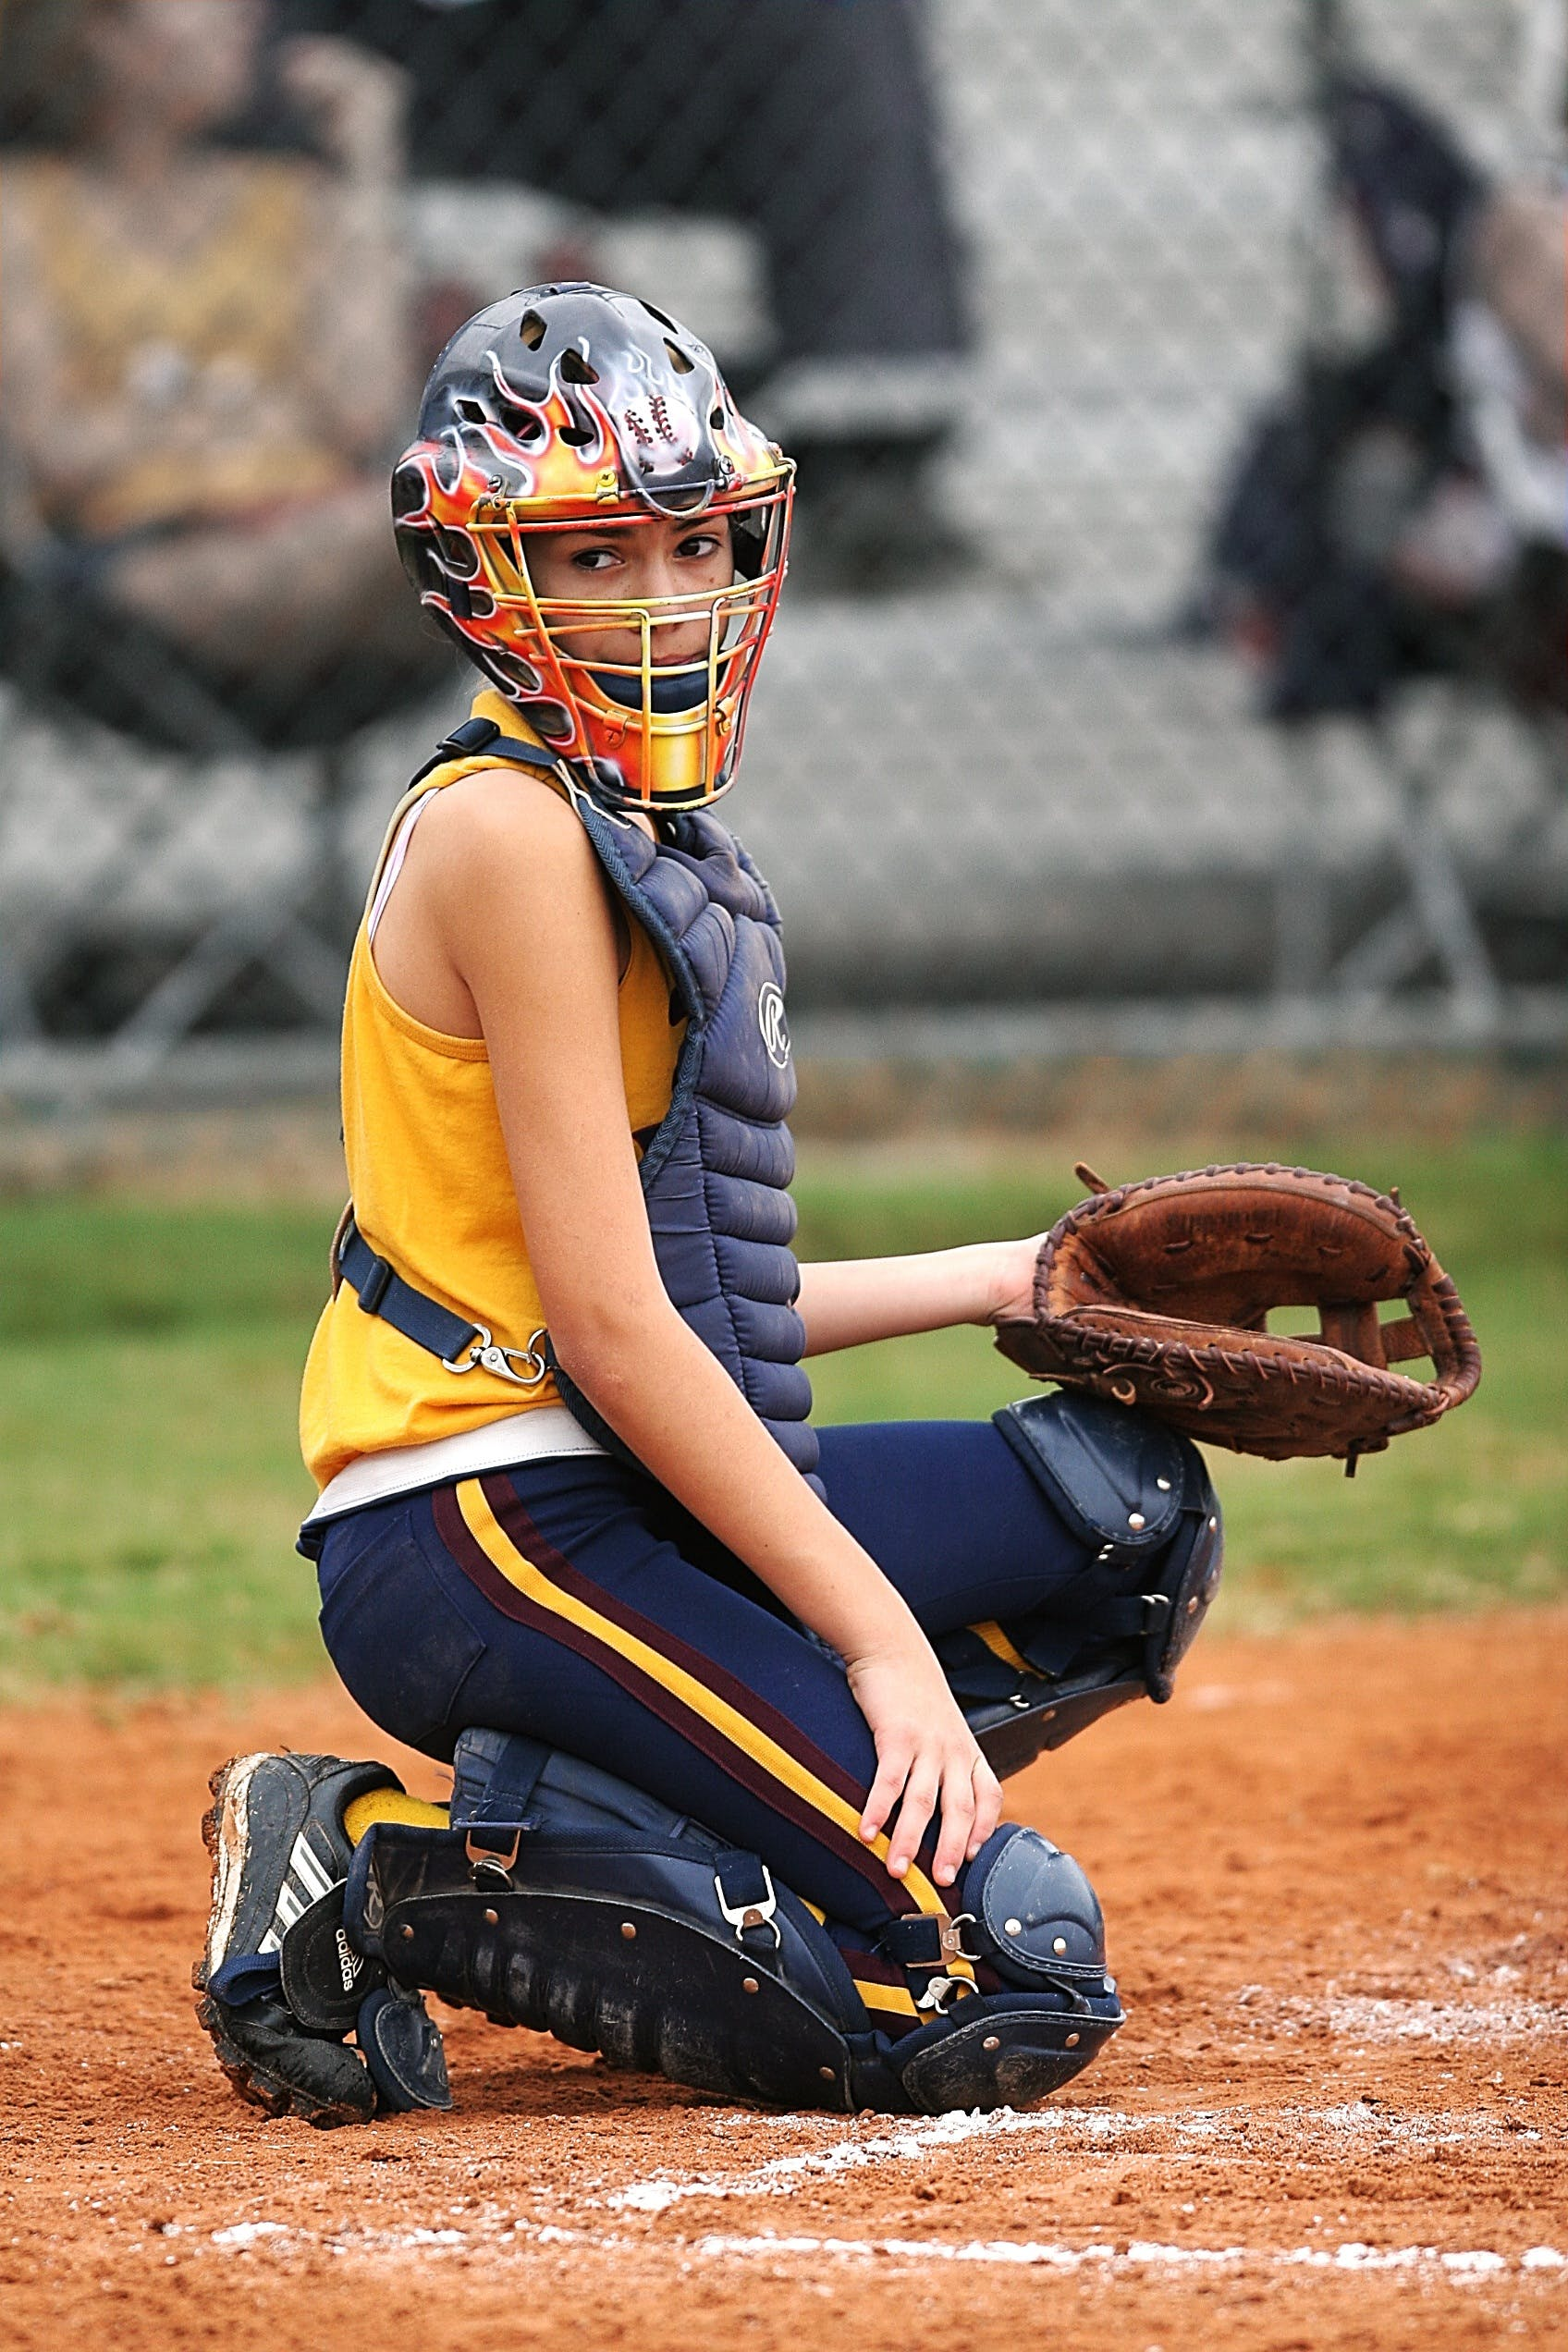 Female Baseball Catcher Portrait Photo during the Game at Daytime